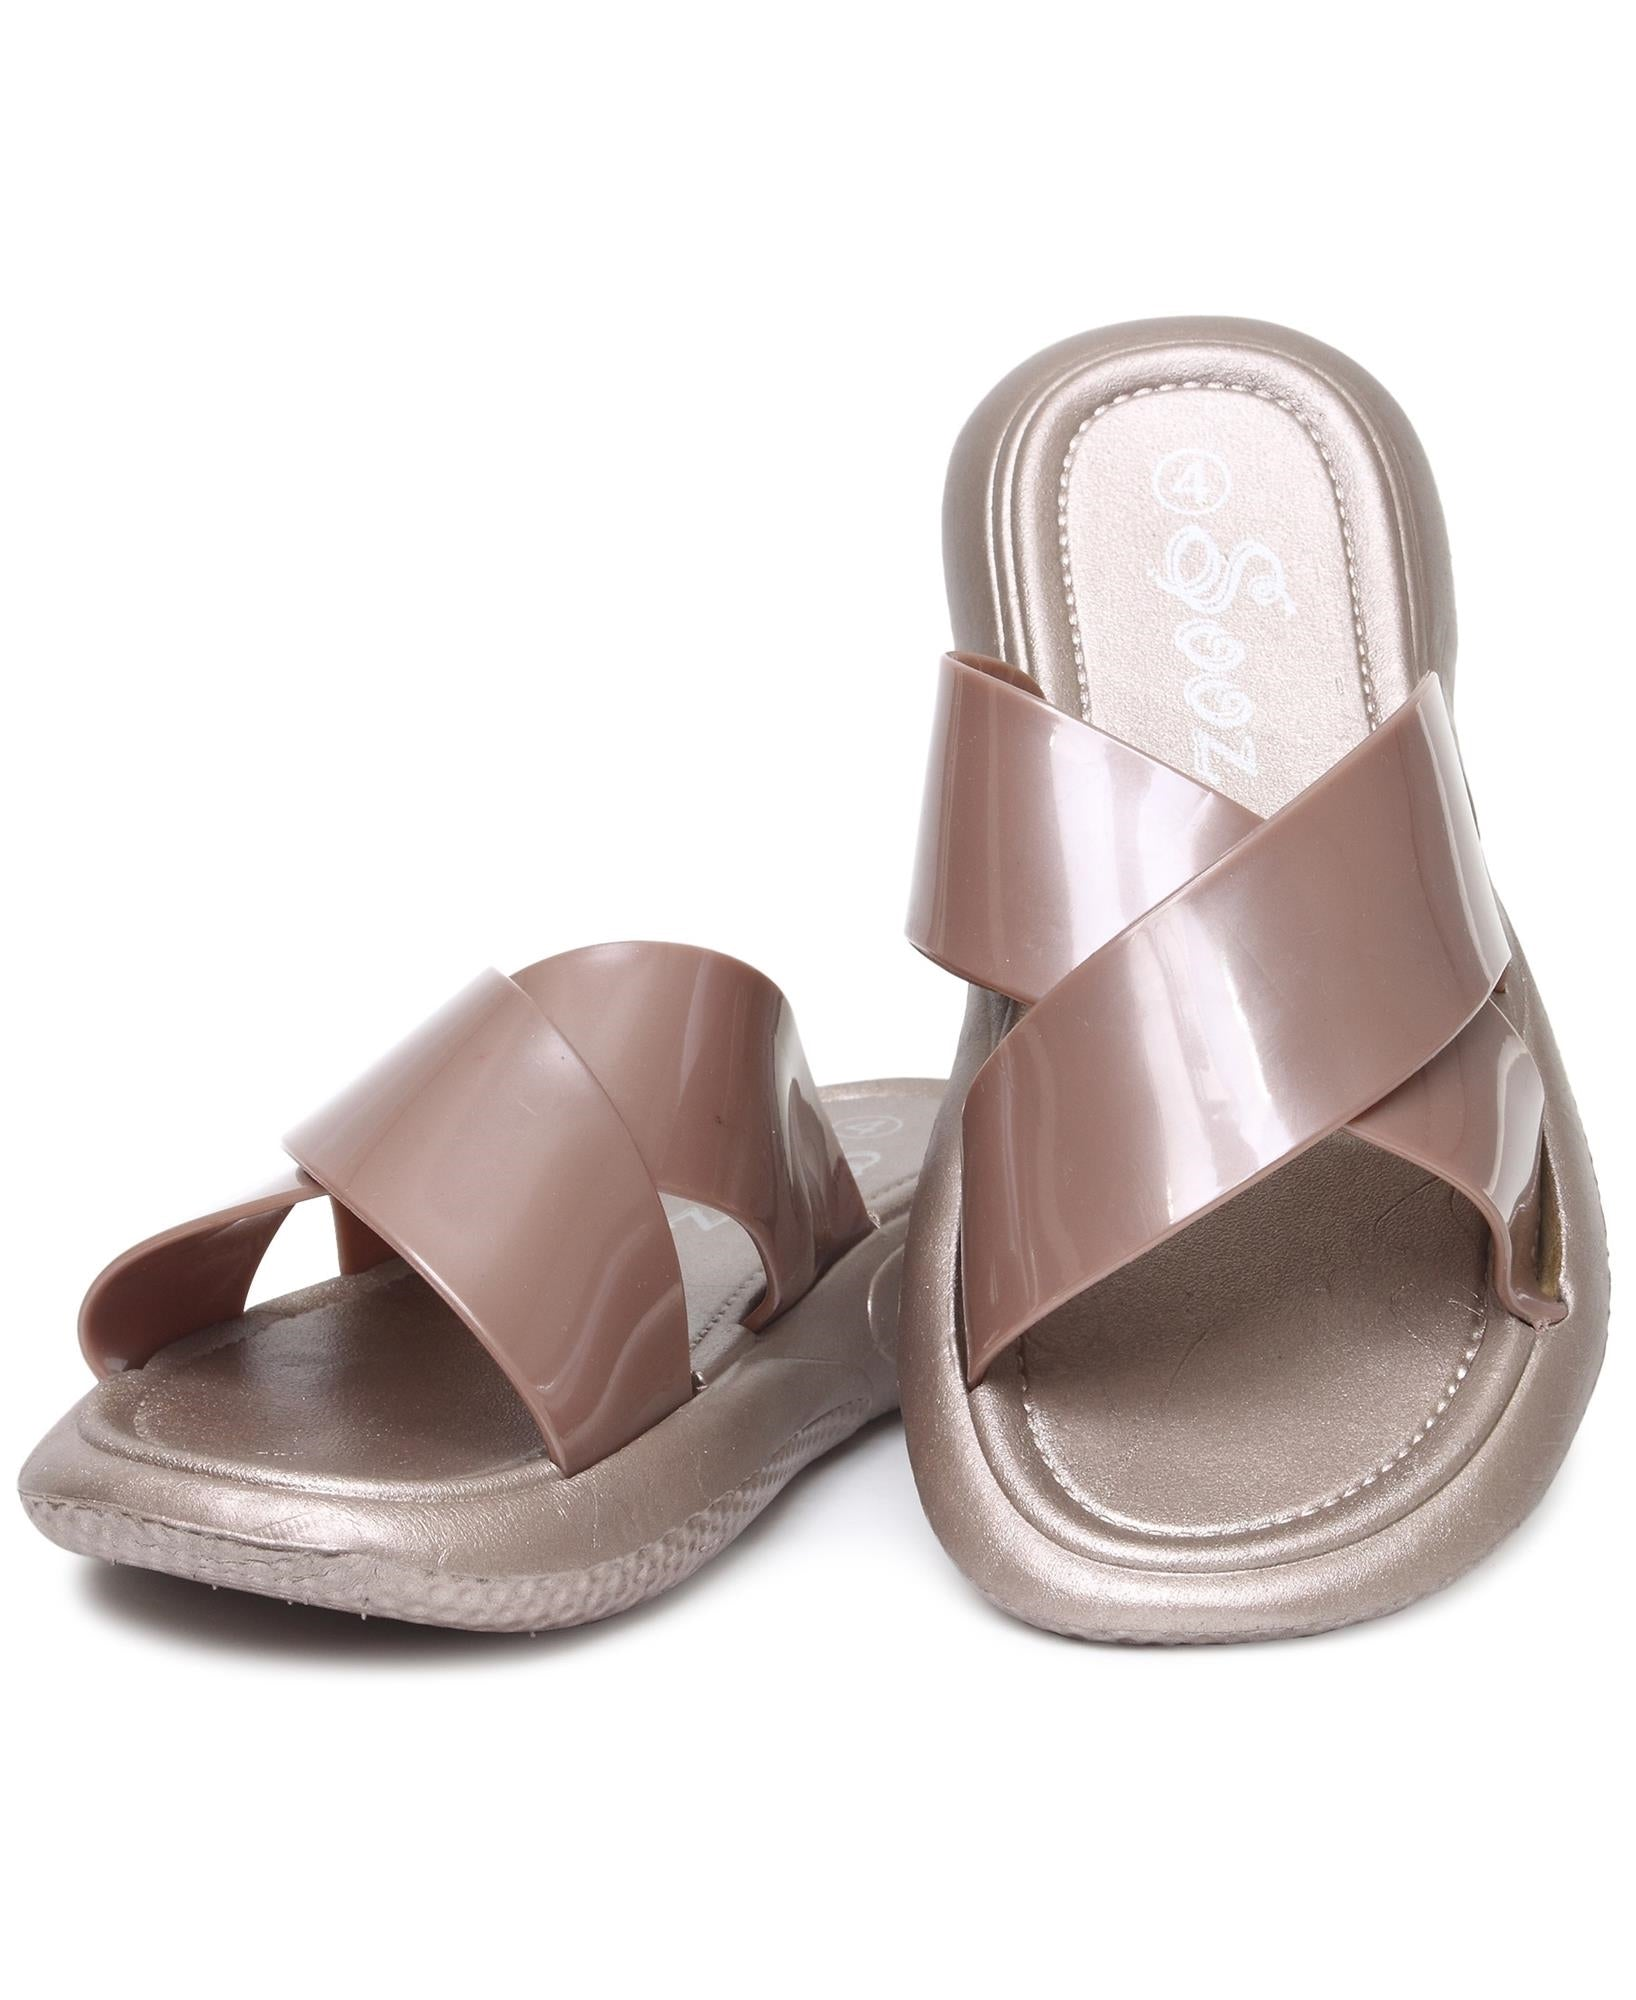 Crossover Sandals - Rose Gold